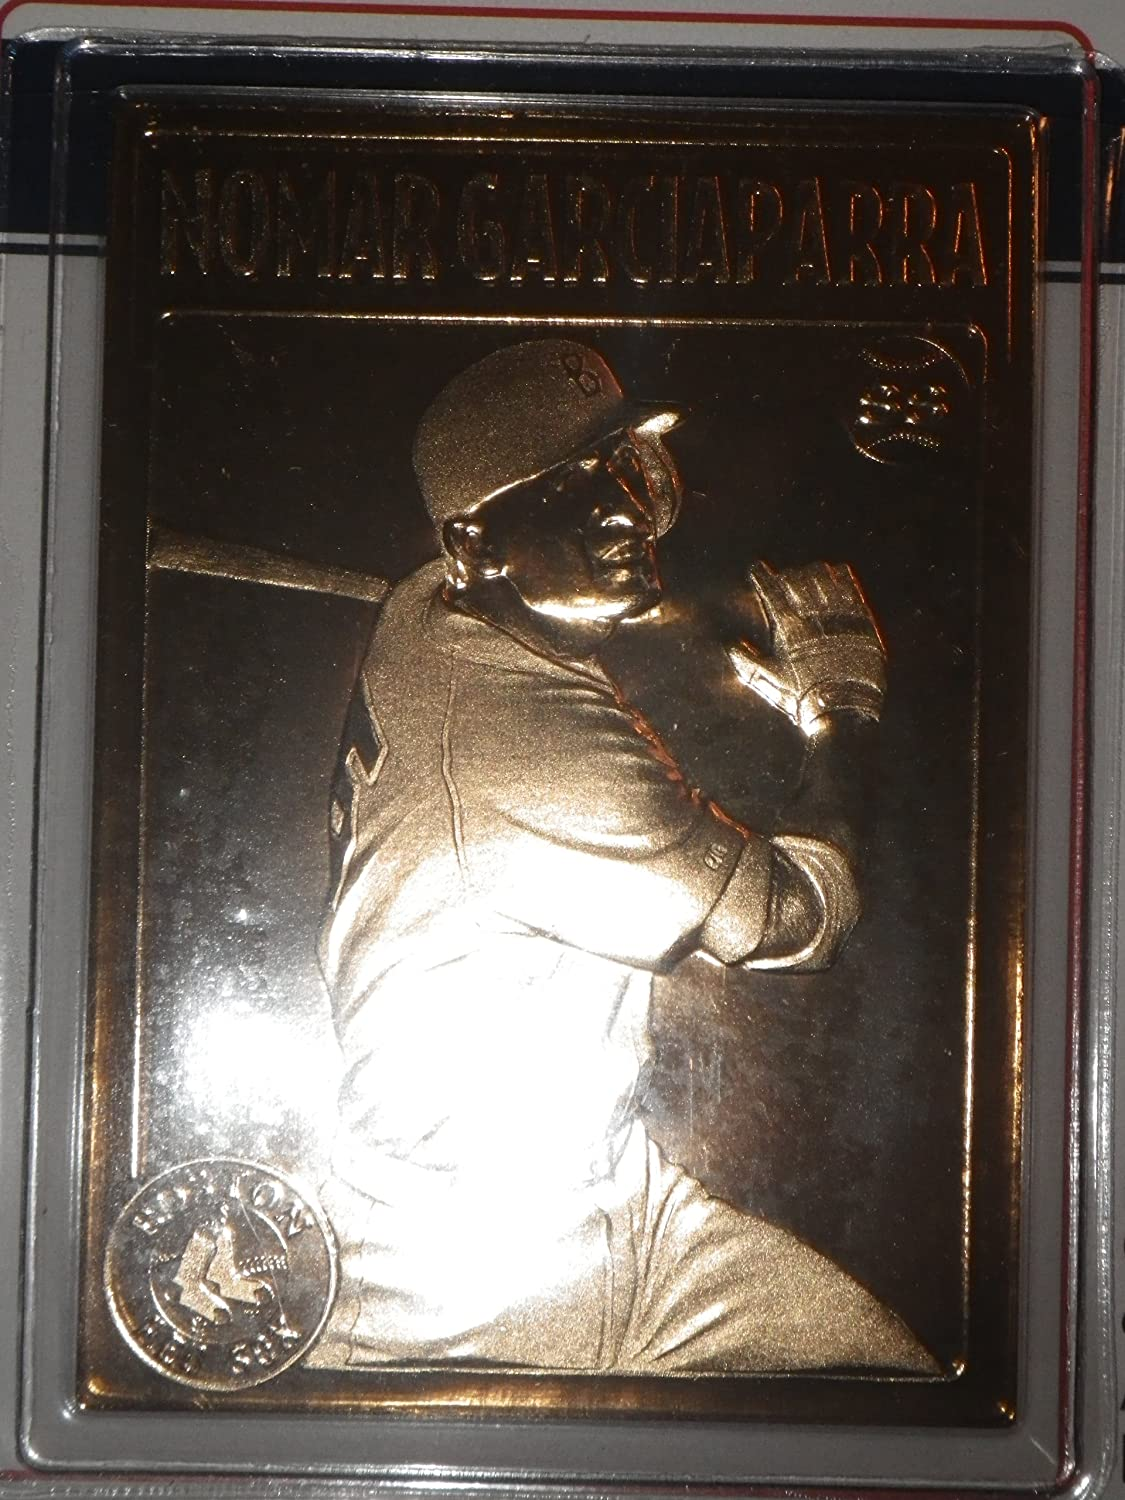 Red Sox 1999 Nomar Garciaparra /& Pedro Martinez Official 22kt Gold Cards By the Danbury Mint